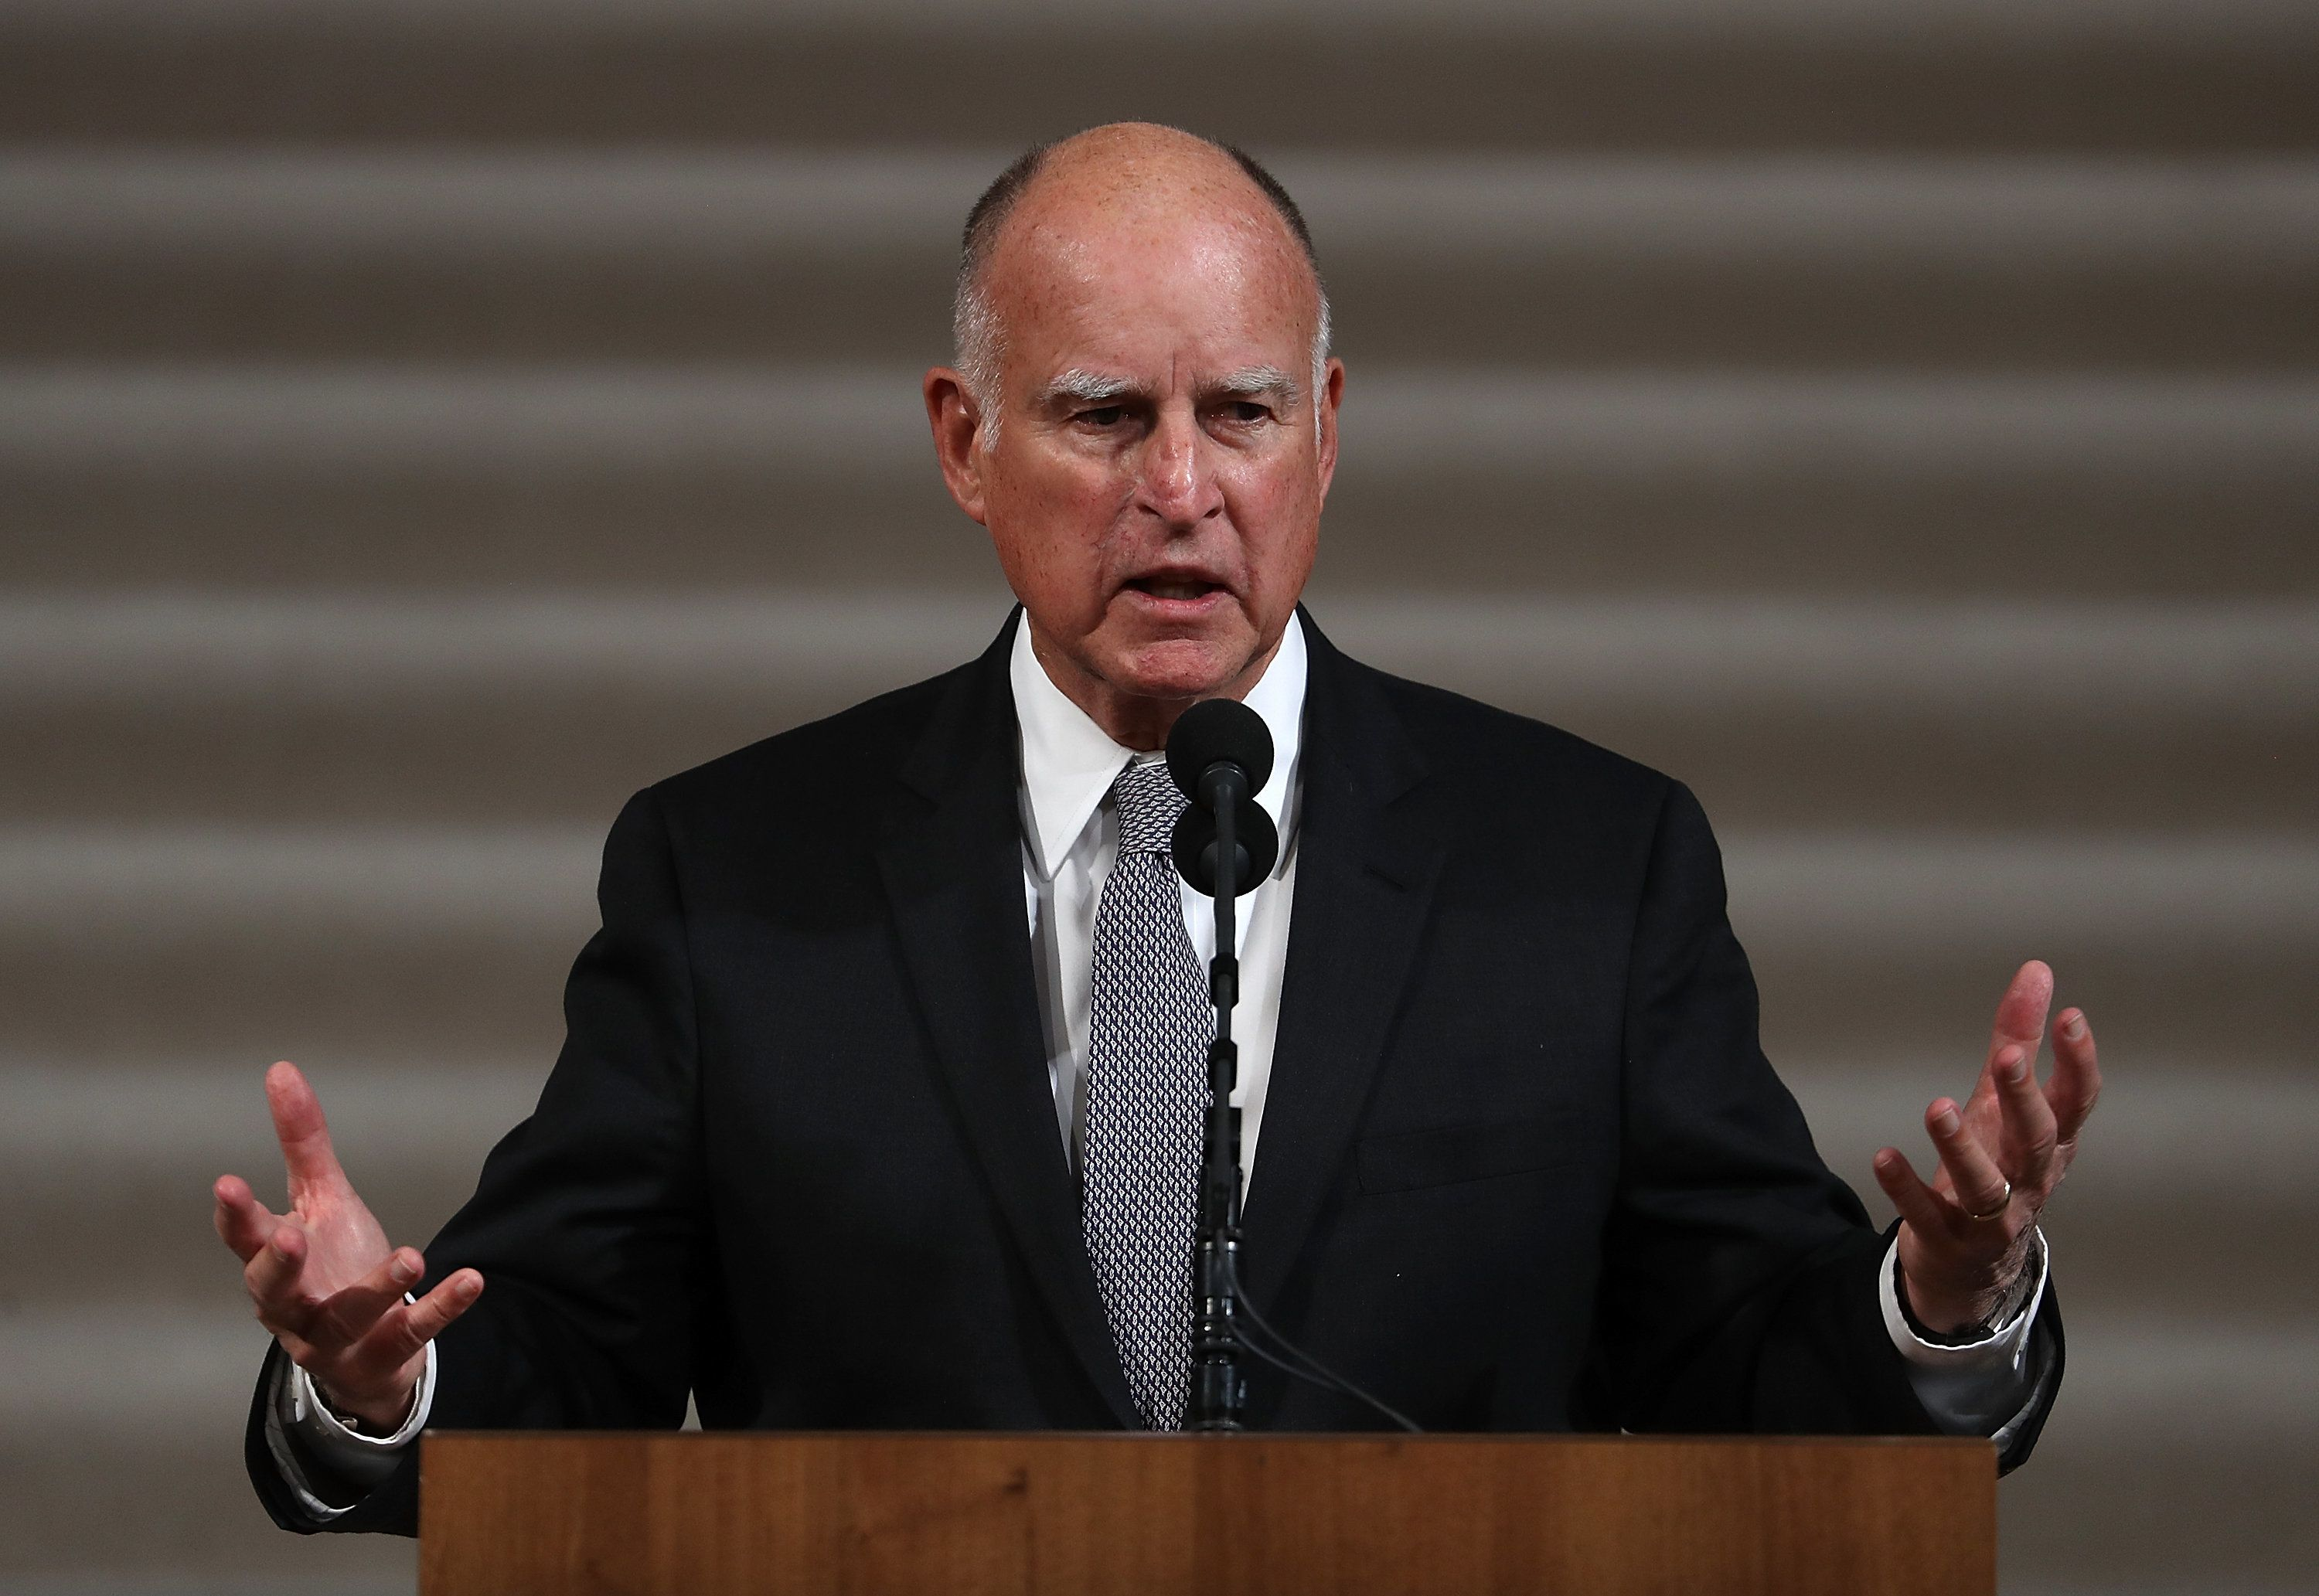 SAN FRANCISCO, CA - DECEMBER 17:  California Gov. Jerry Brown speaks during a Celebration of Life Service held for the late San Francisco Mayor Ed Lee on December 17, 2017 in San Francisco, California. Hundreds of people attended the service for Lee, who died unexpectedly early Tuesday morning after suffering a heart attack.  (Photo by Justin Sullivan/Getty Images)